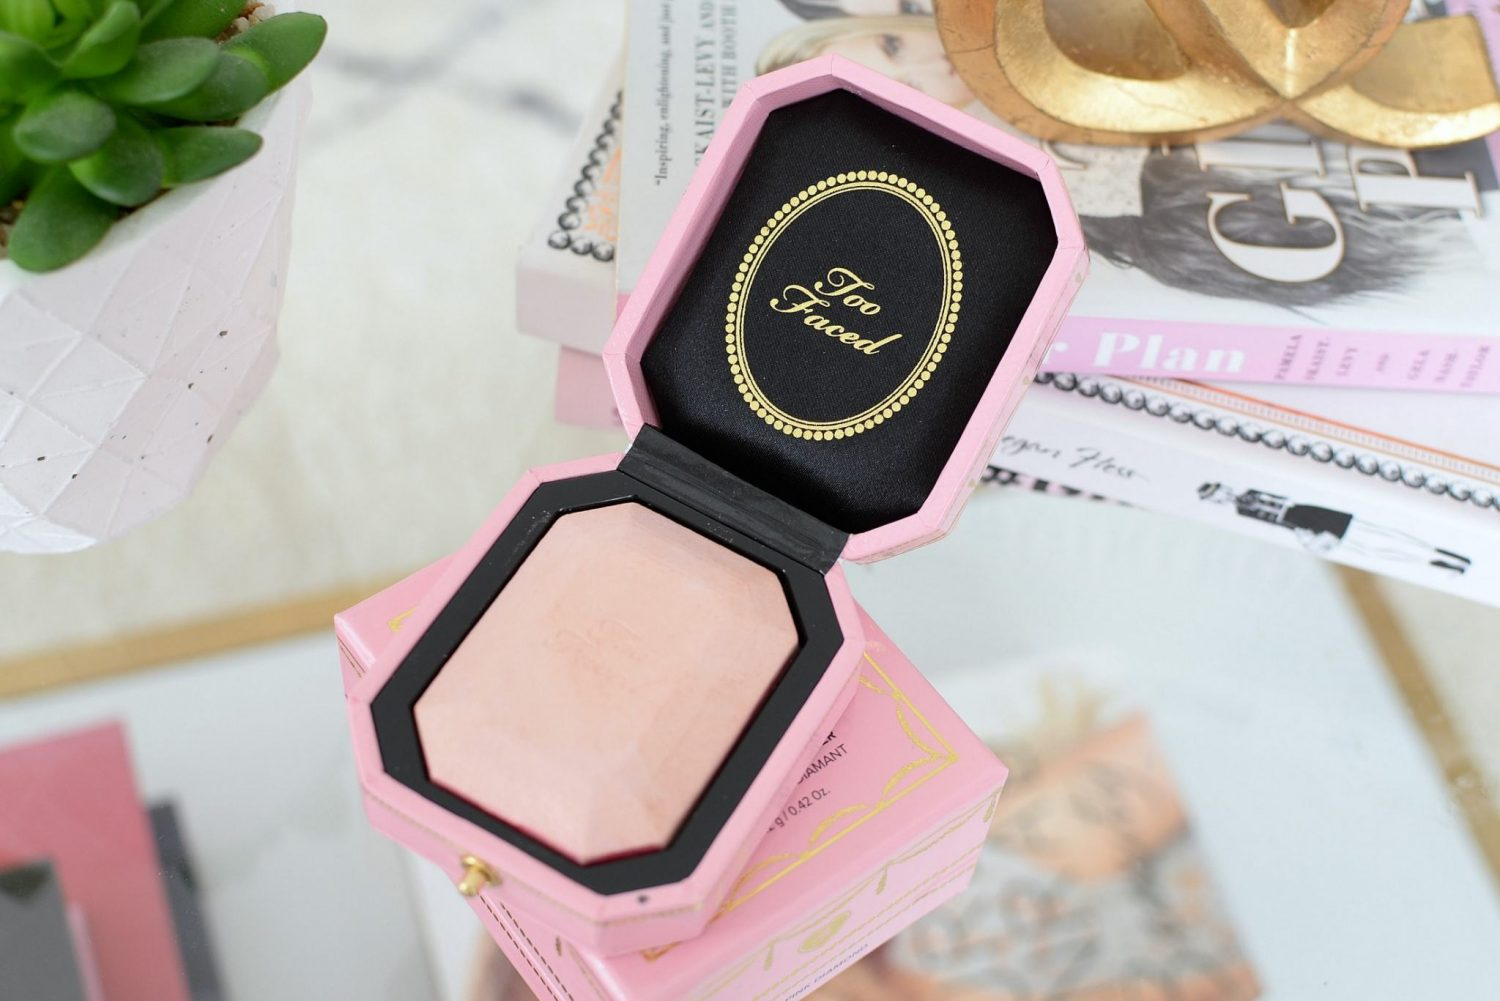 Too Faced Diamond Light Multi-Use Highlighter in Diamond Fire